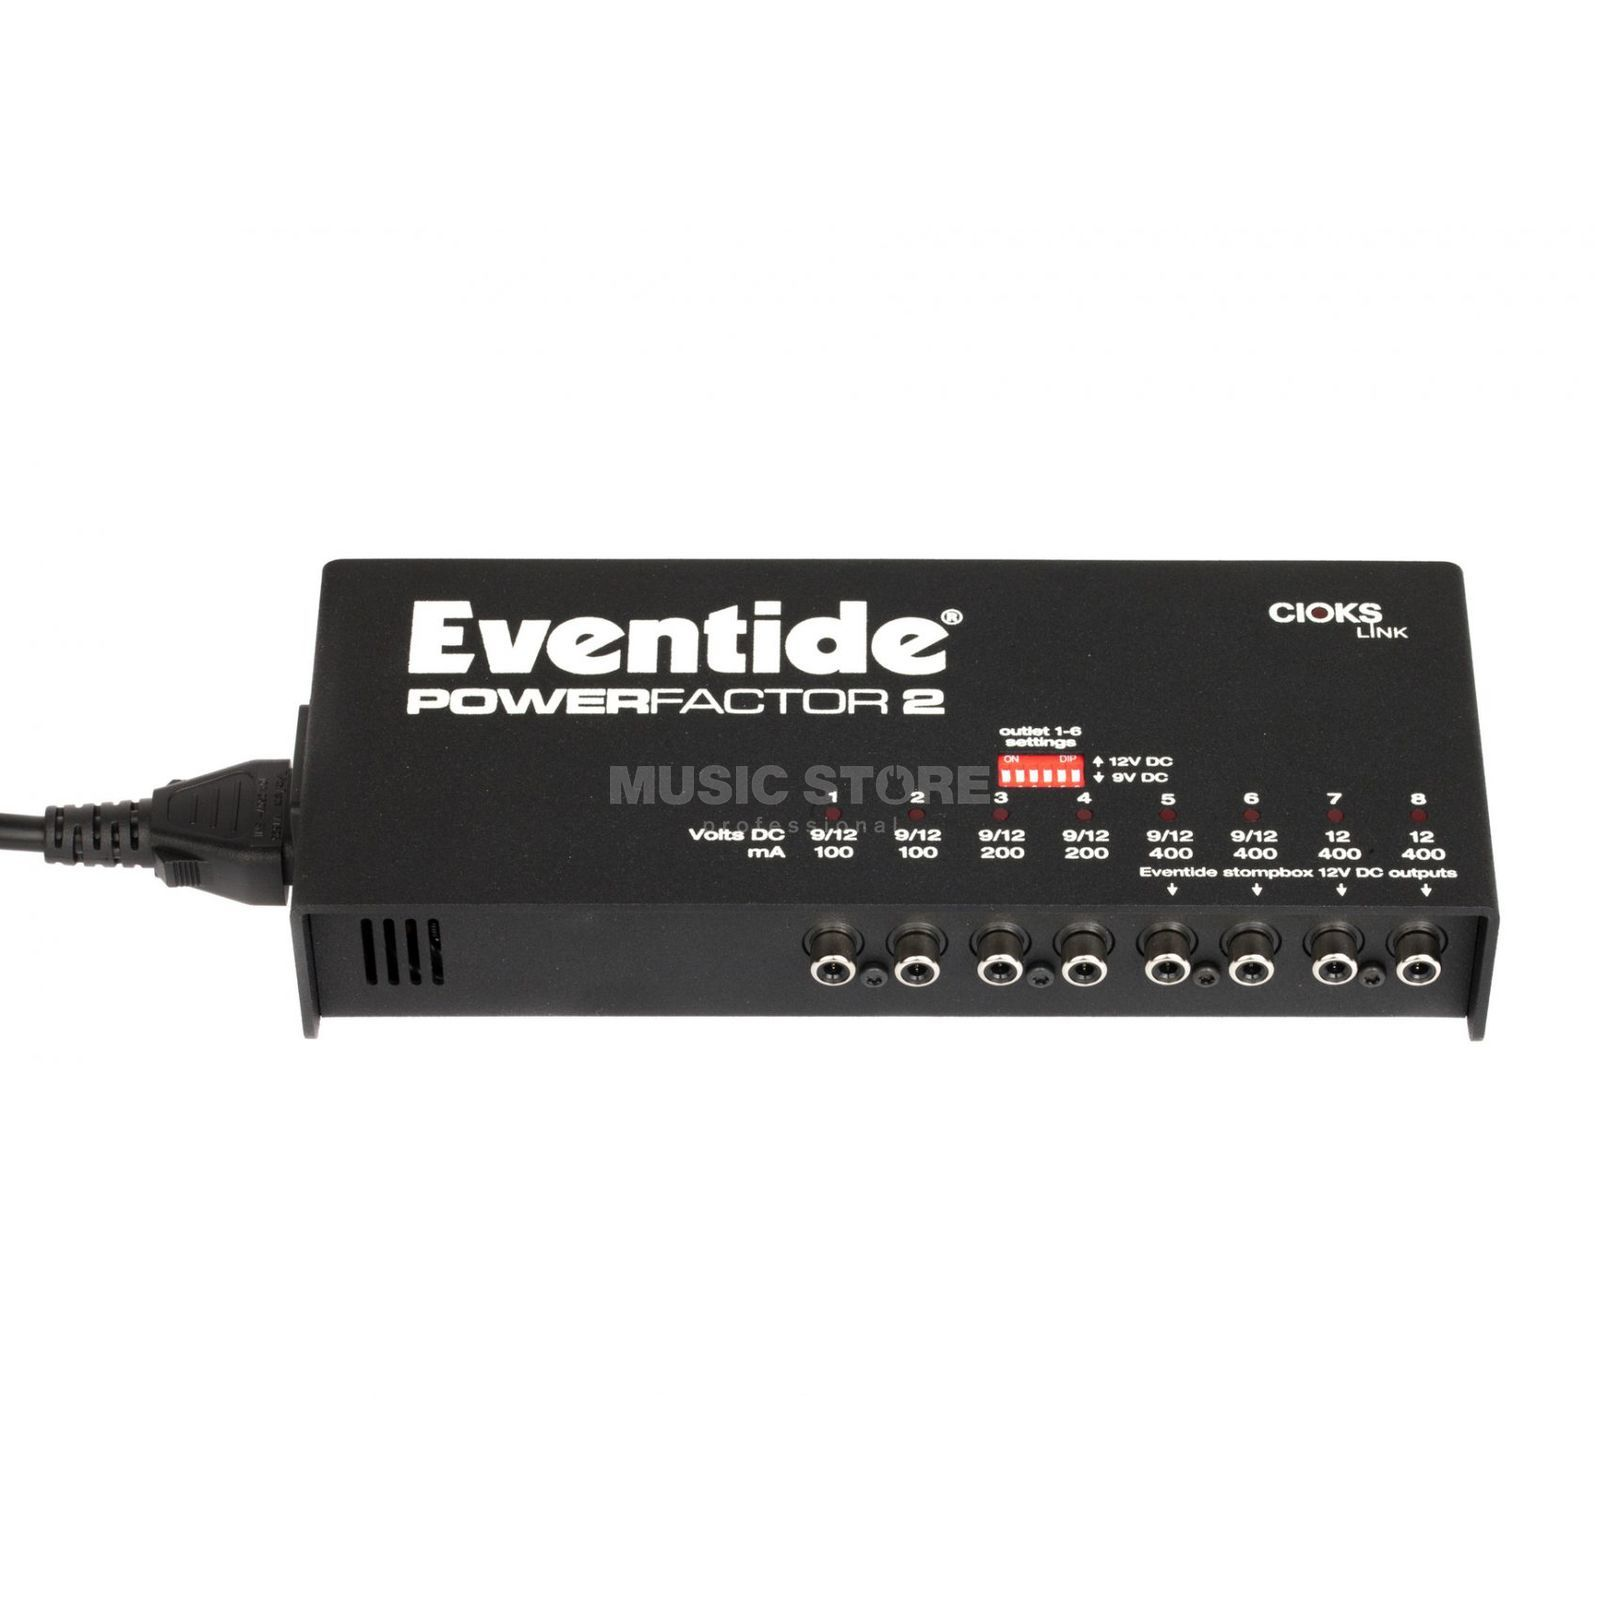 Cioks Eventide Power Factor 2 Produktbild